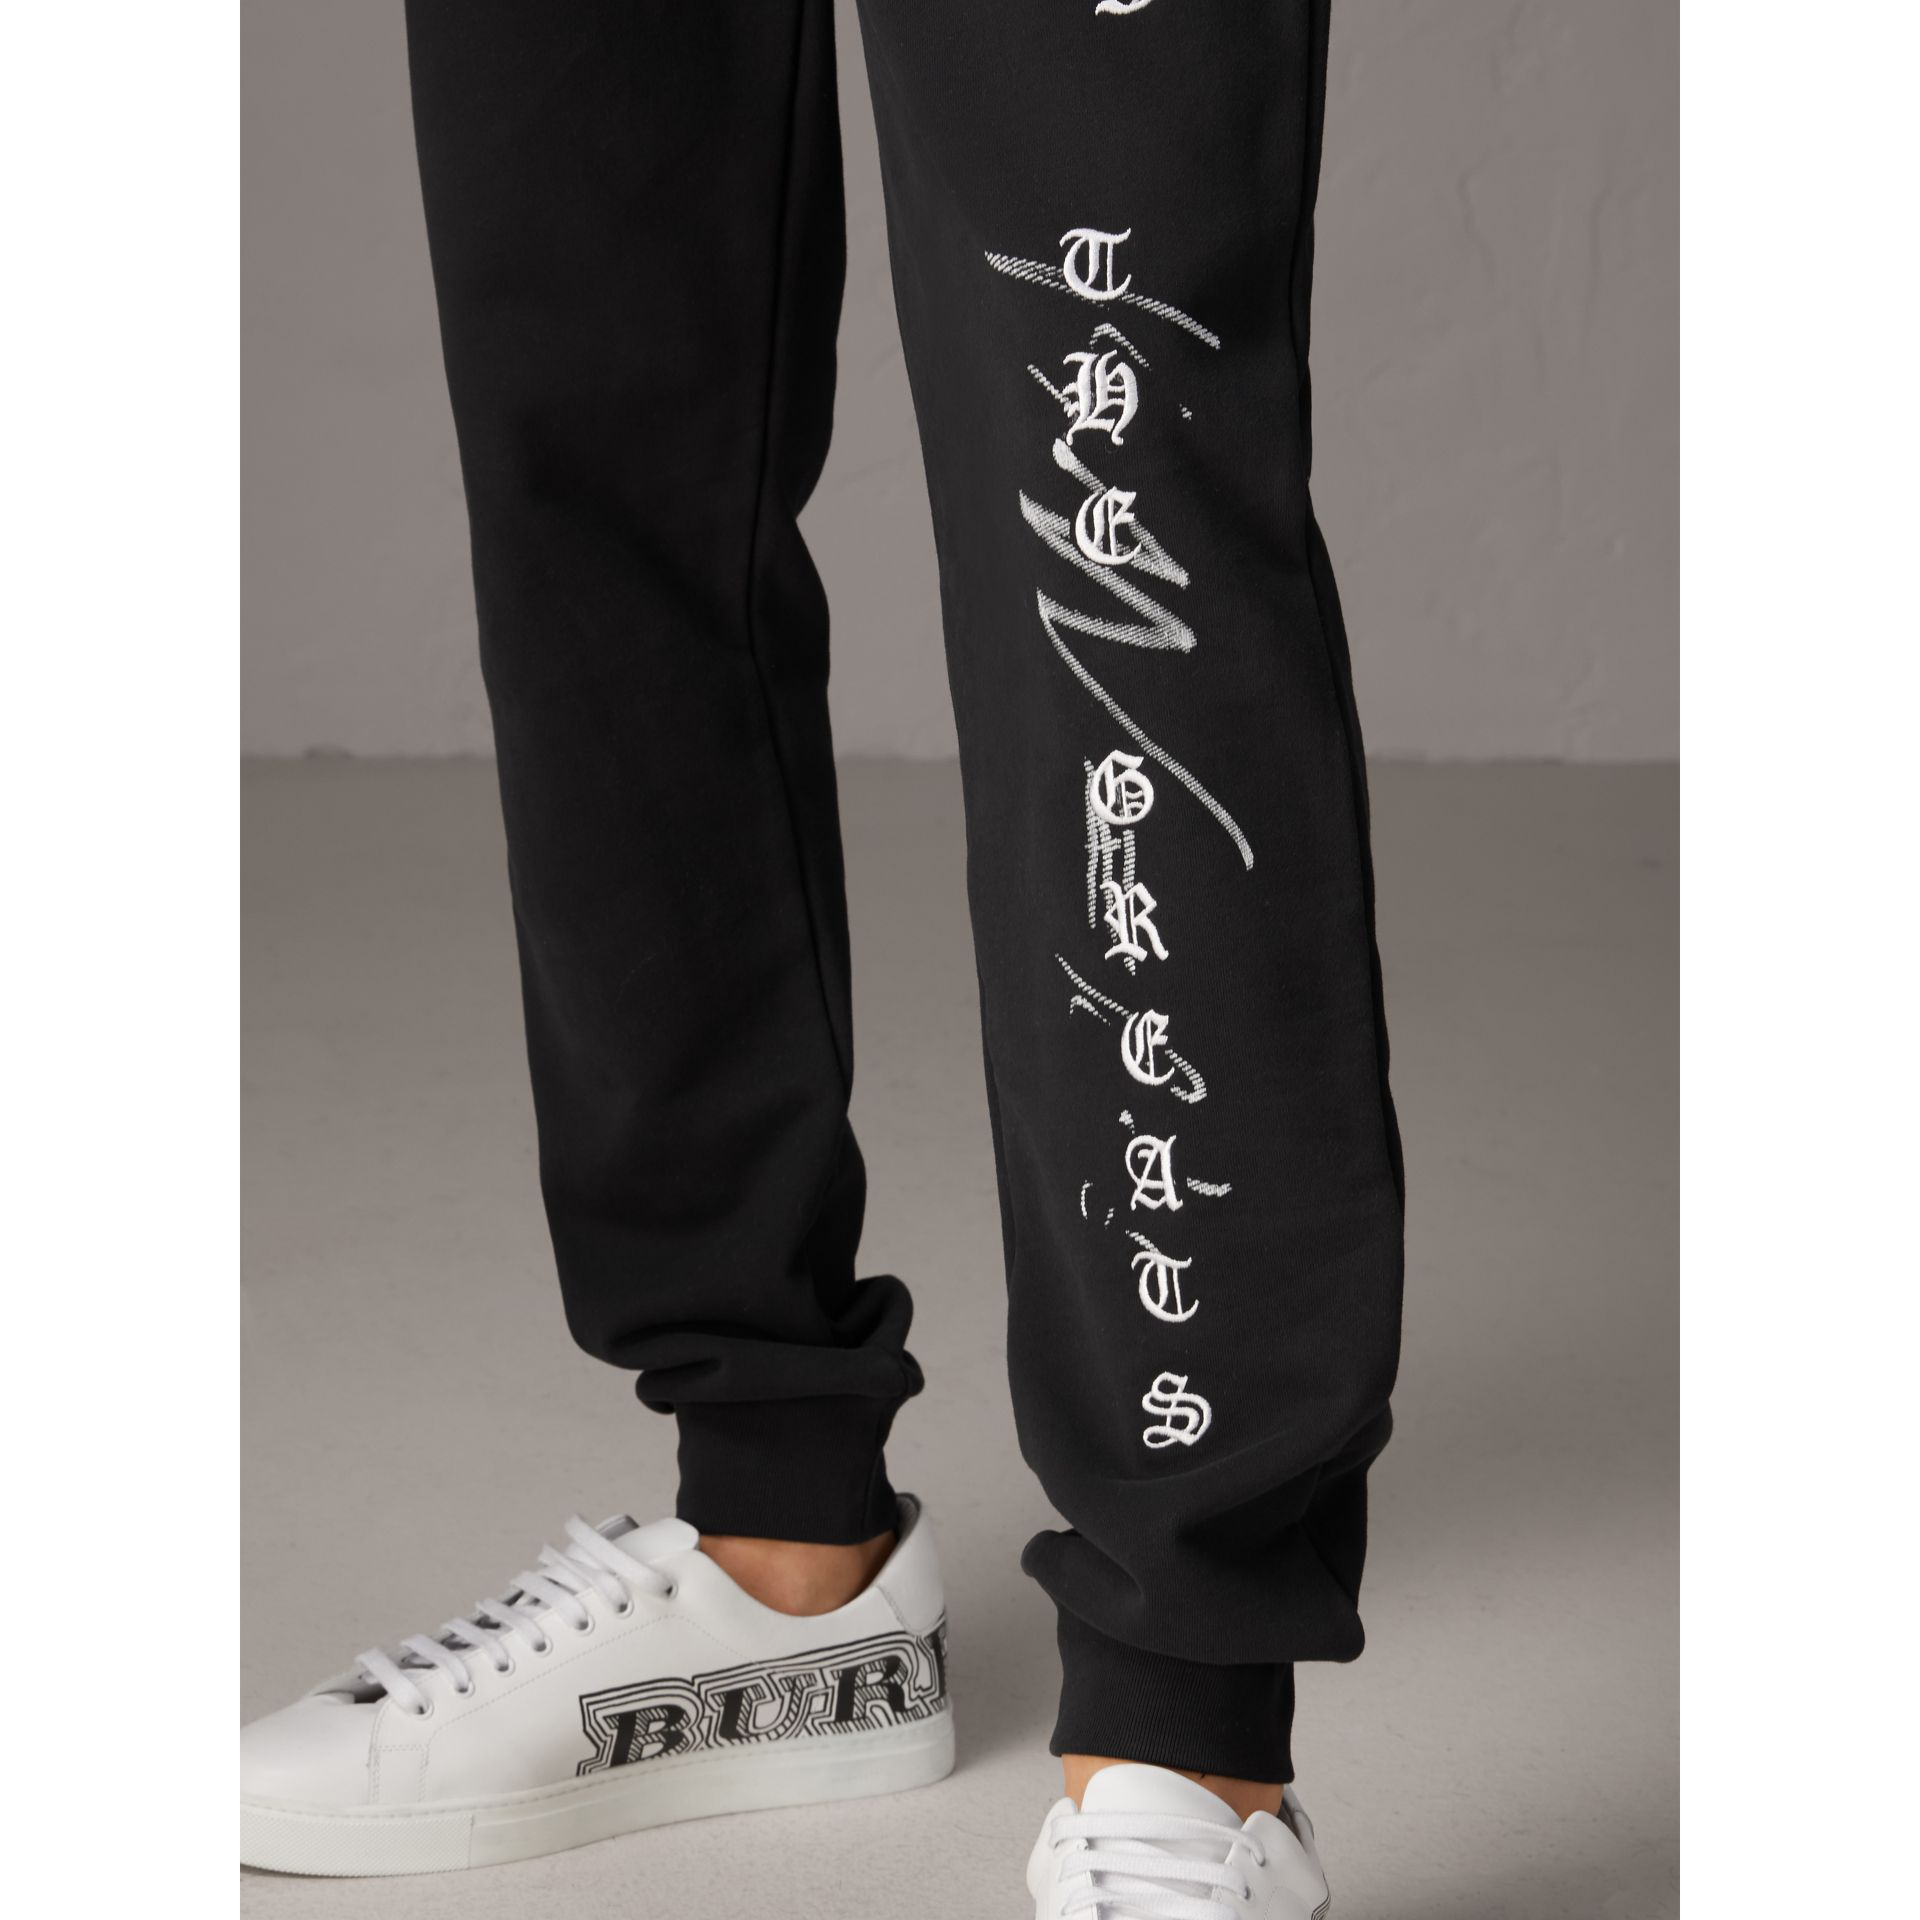 Burberry x Kris Wu Graphic Motif Sweatpants in Black - Men | Burberry Hong Kong - gallery image 1